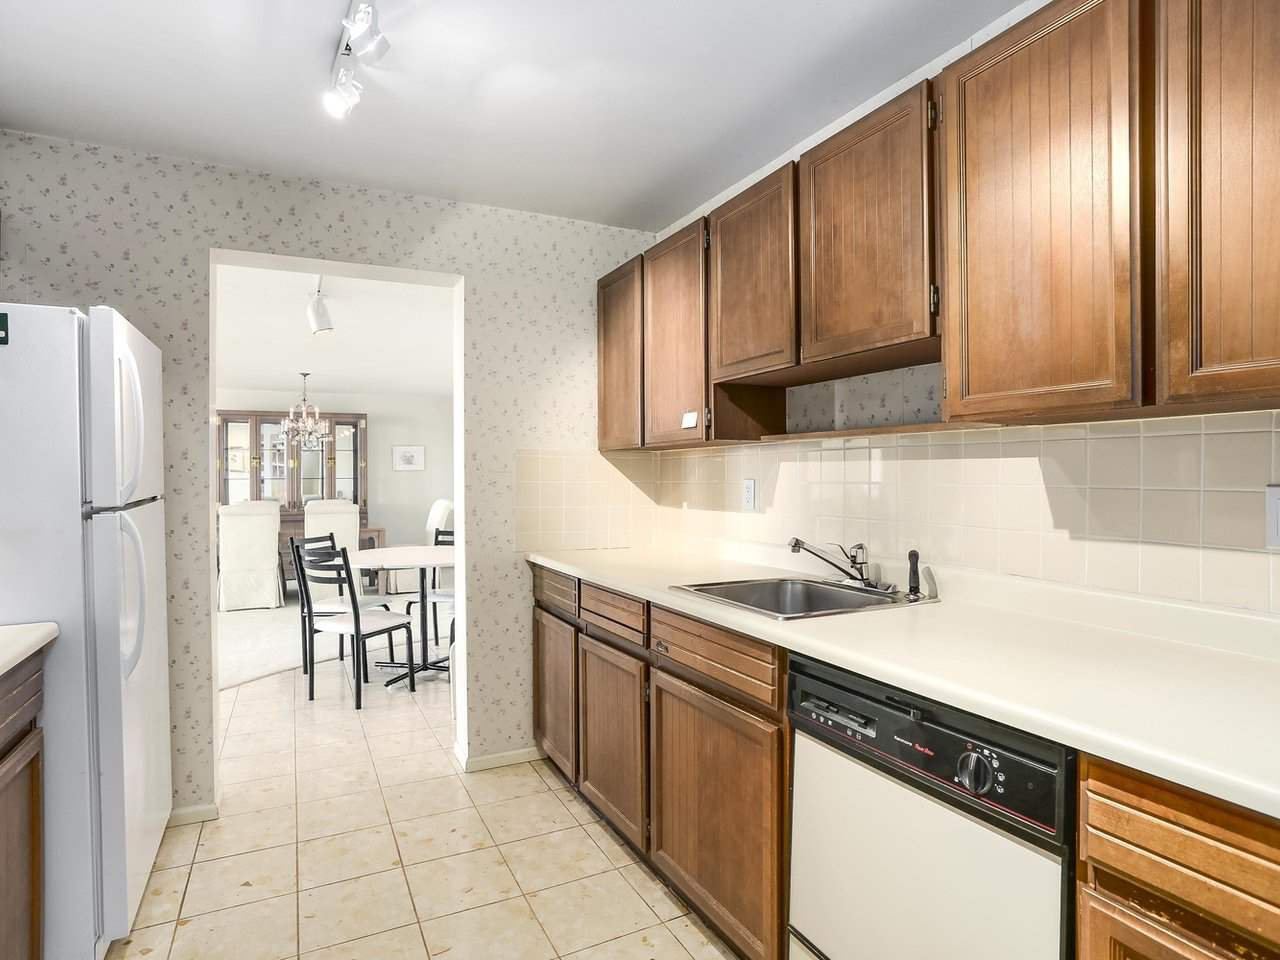 "Photo 4: Photos: 1608 6651 MINORU Boulevard in Richmond: Brighouse Condo for sale in ""REGENCY PARK TOWERS"" : MLS®# R2209522"